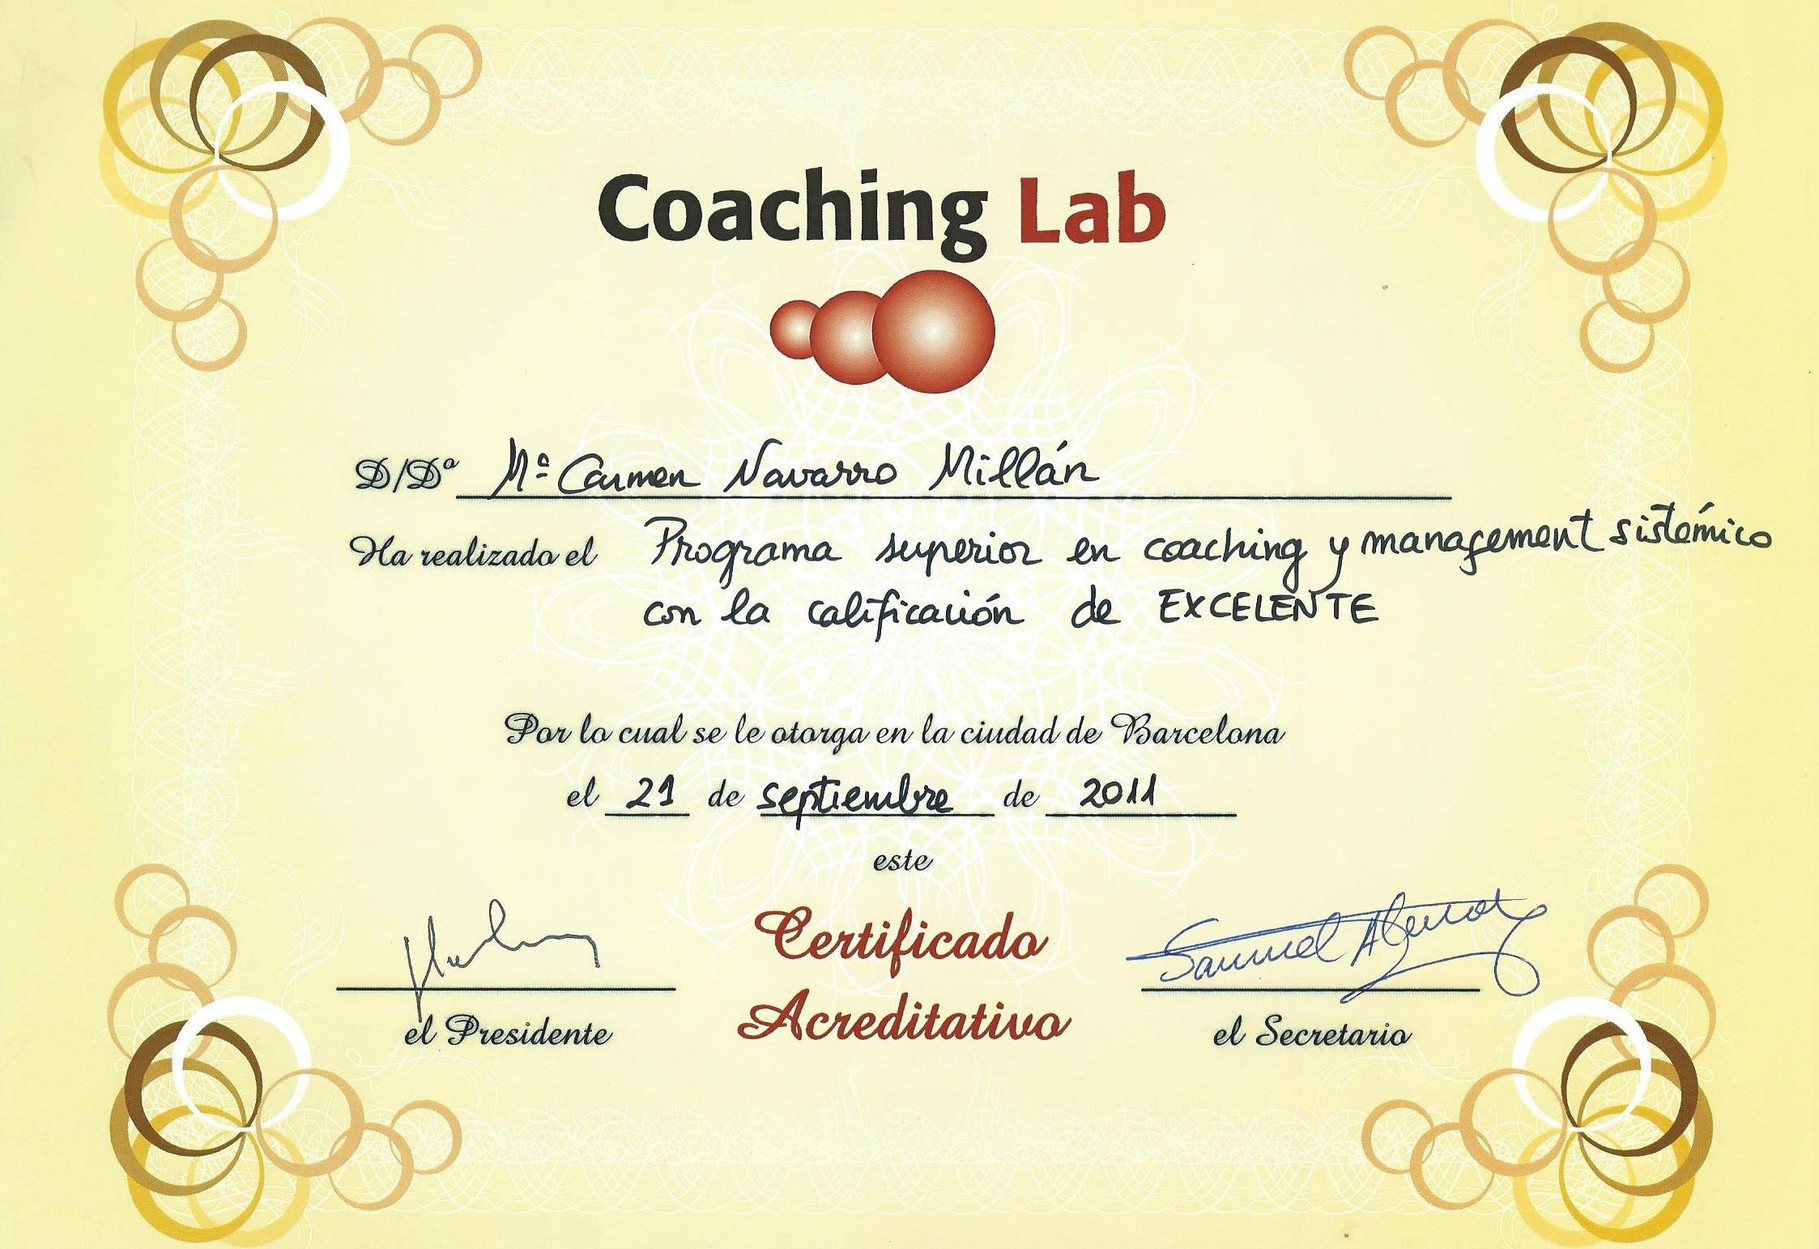 Programa superior en coaching y management sistémico